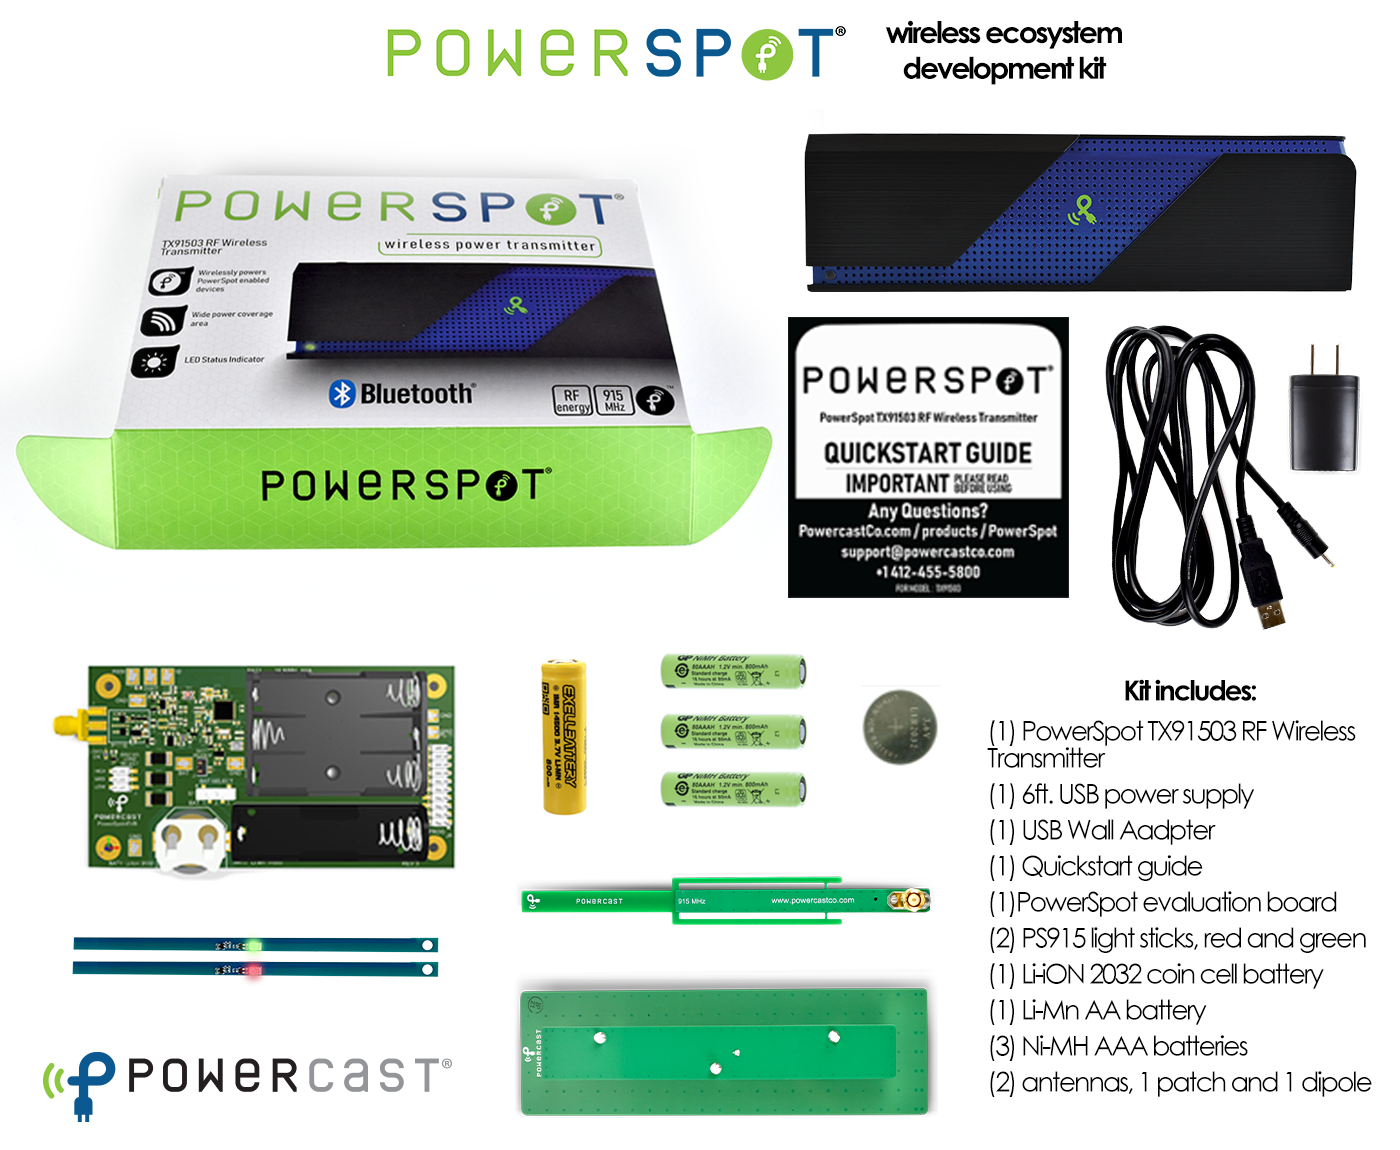 PowerSpot development kit 2